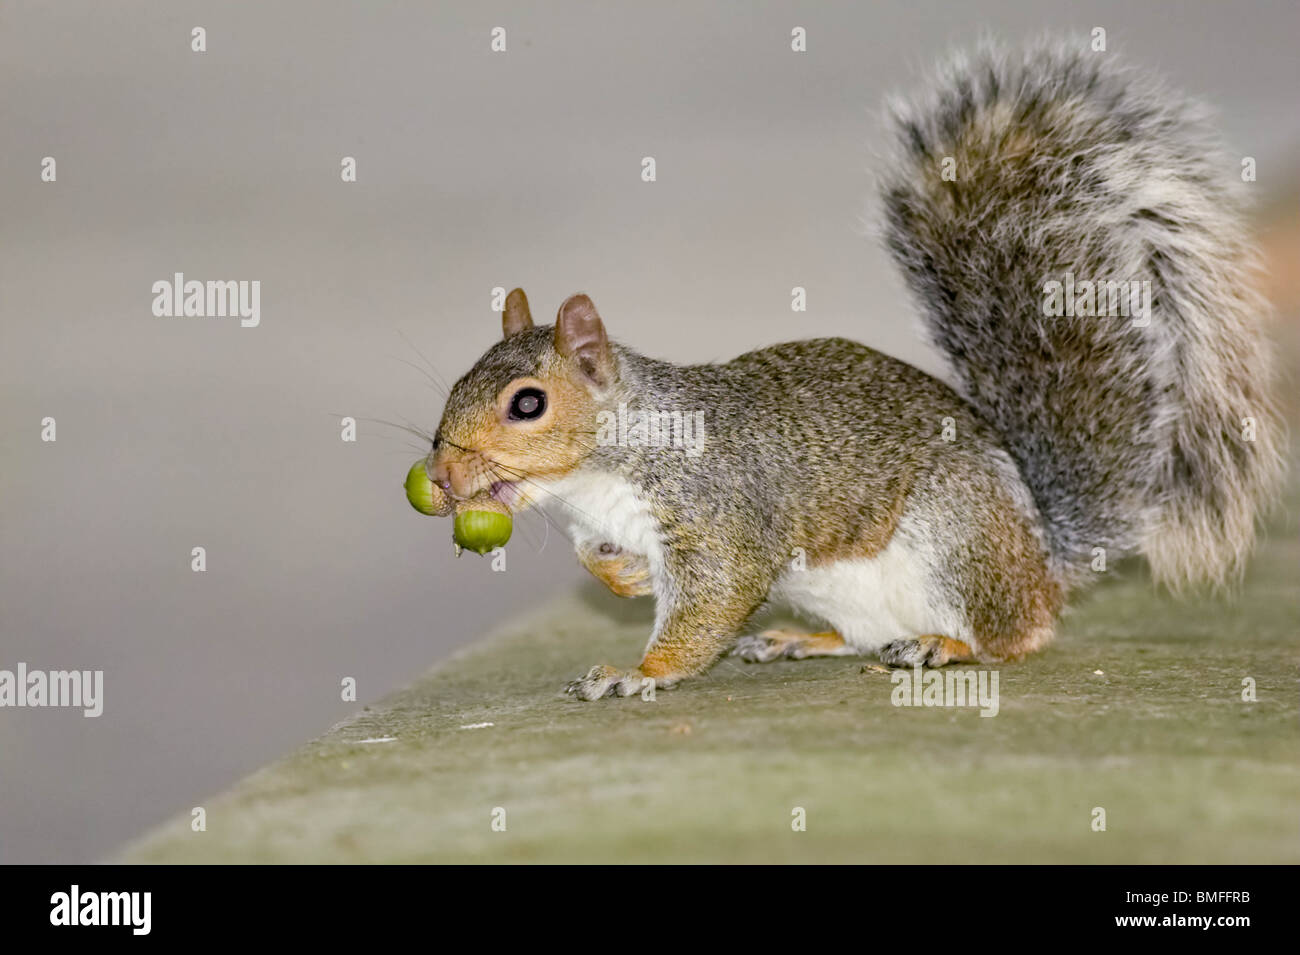 Eastern Gray Squirrel carrying acorns in its mouth - Stock Image